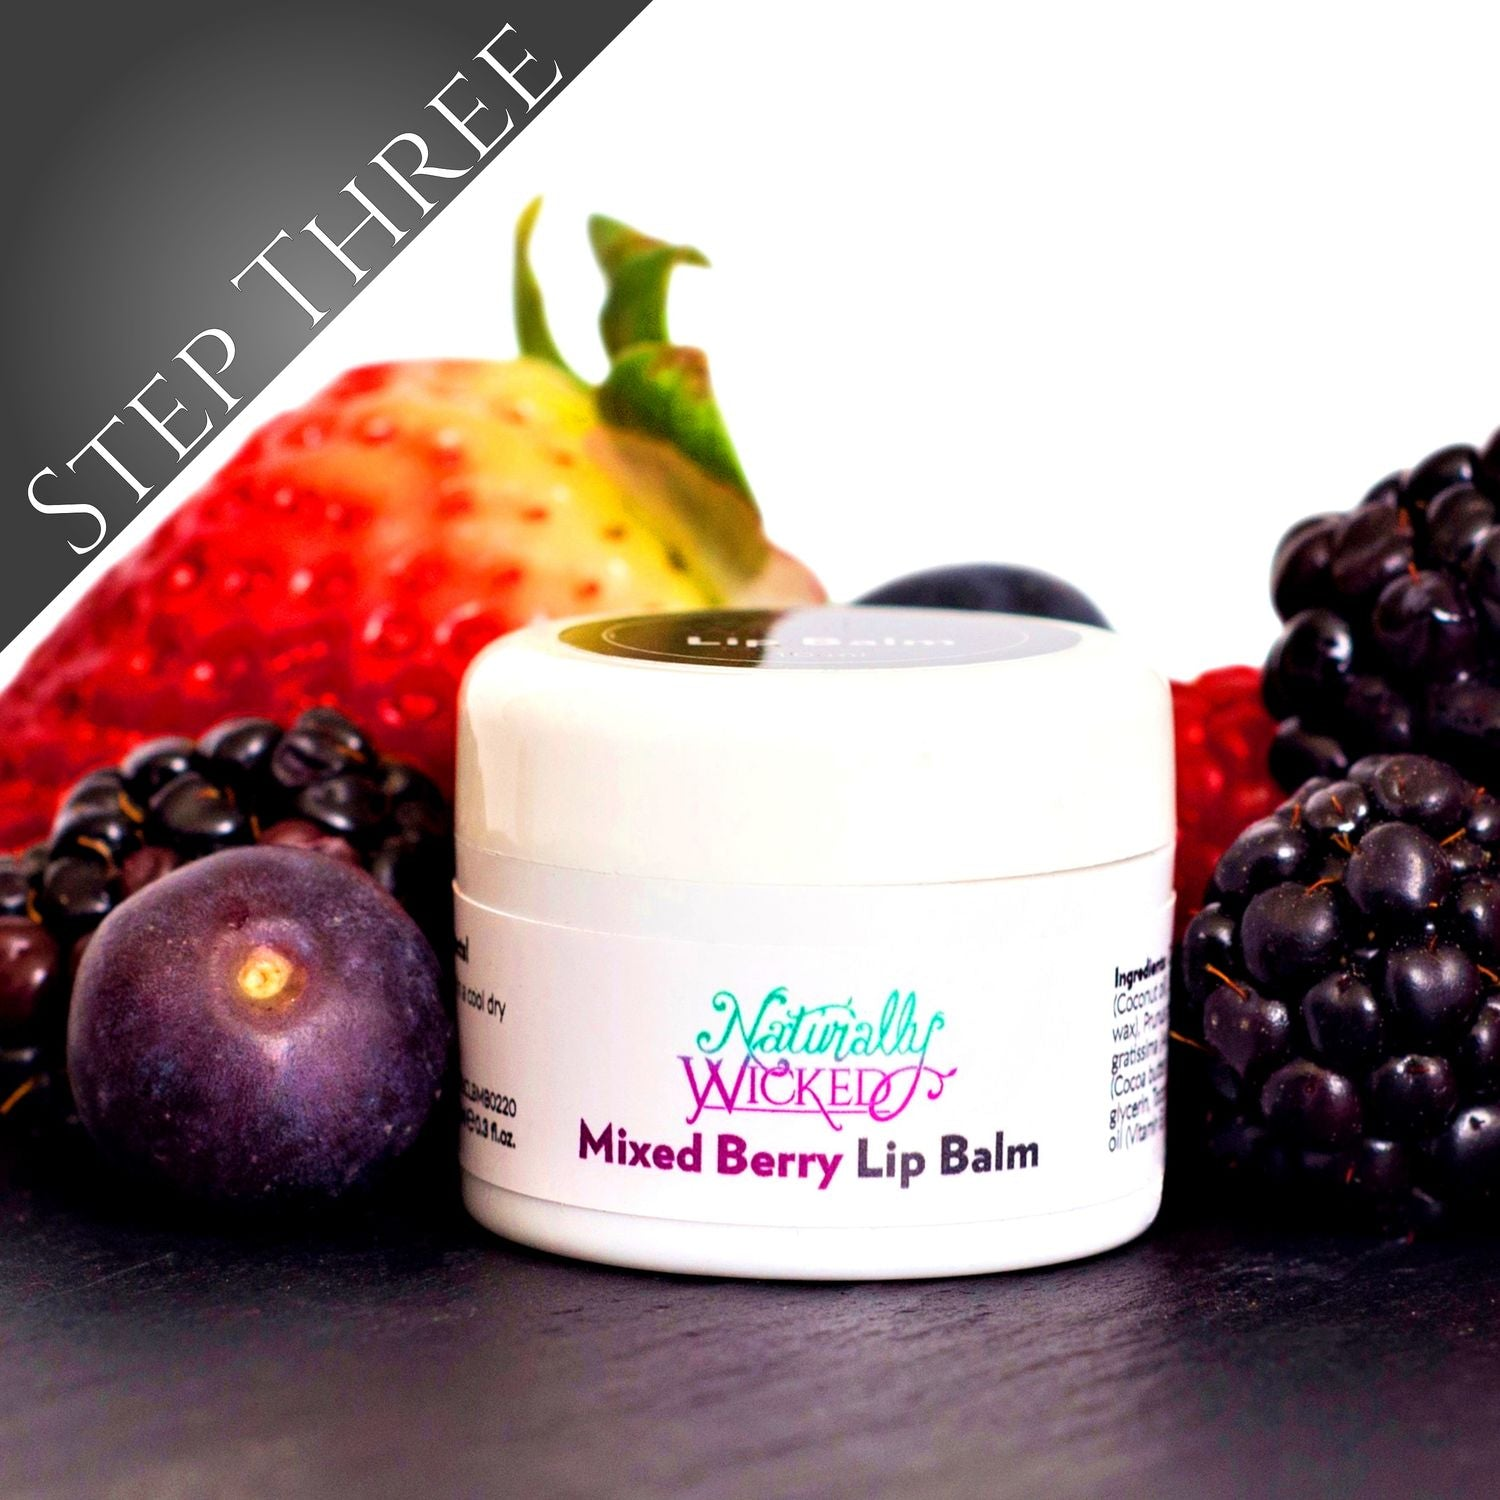 Naturally Wicked Mixed Berry Lip Balm Surrounded By Blueberries, Blackberries & Raspberries